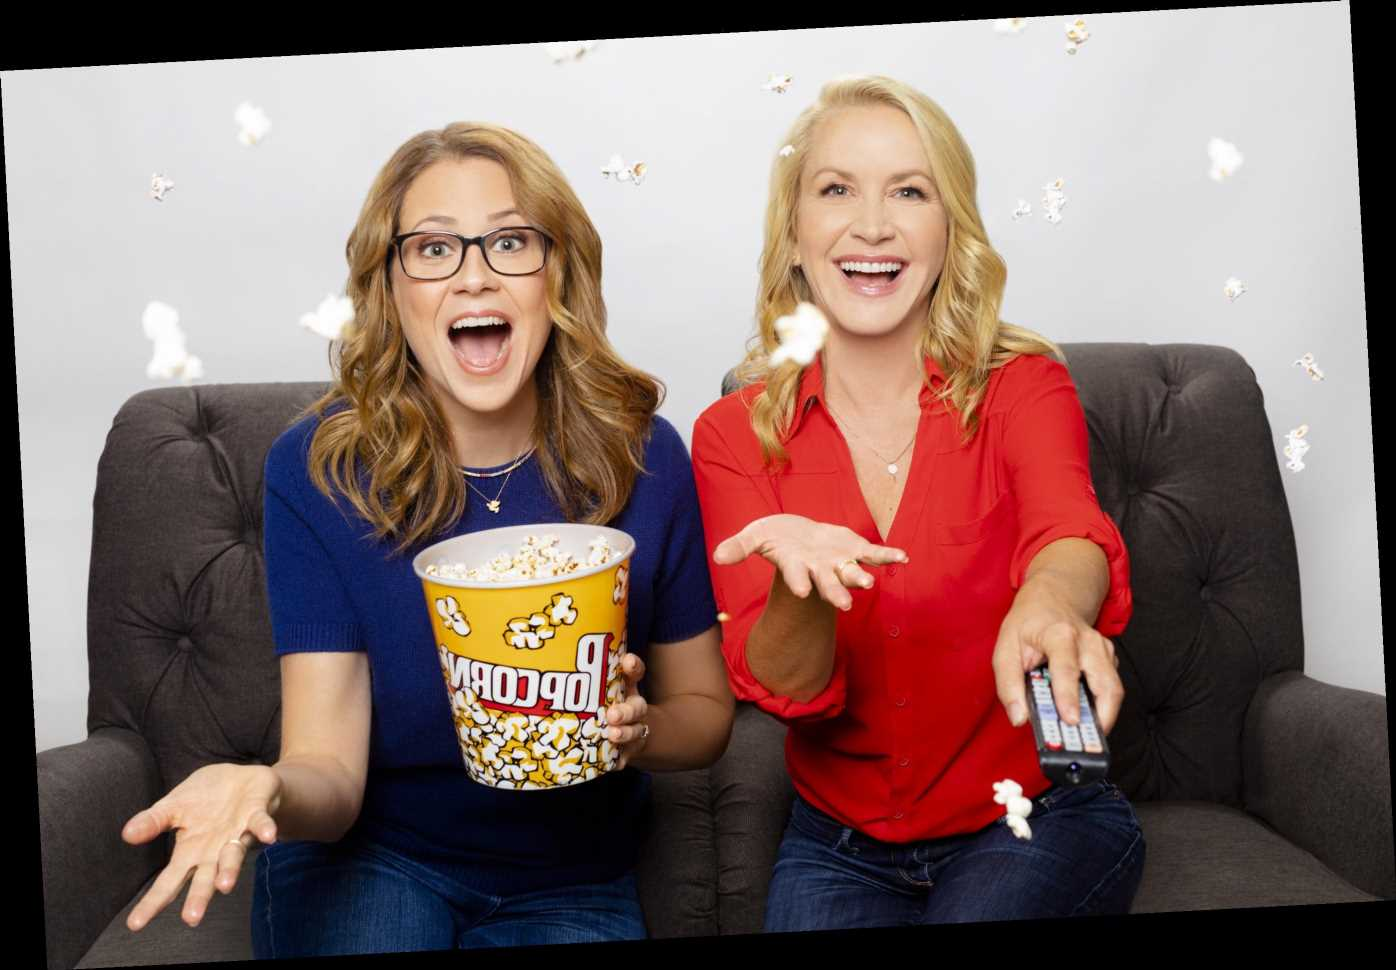 The Office: Jenna Fischer, Angela Kinsey on Office Ladies podcast